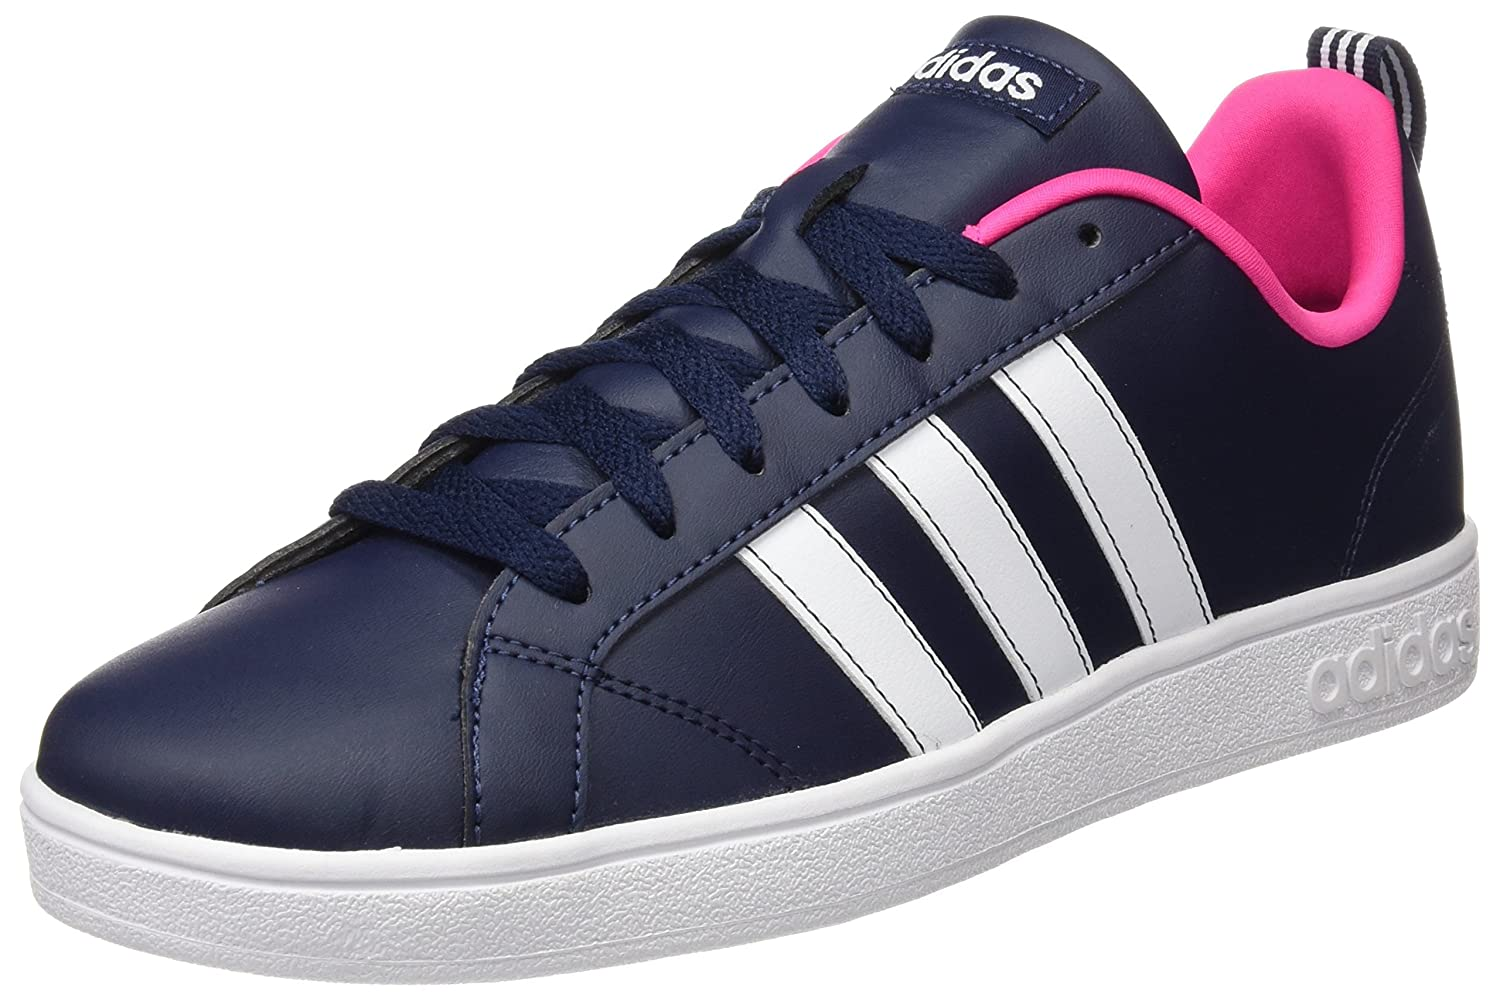 Adidas - Advantage Vs W, Scarpe Sportive Donna: Amazon.it: Scarpe e borse